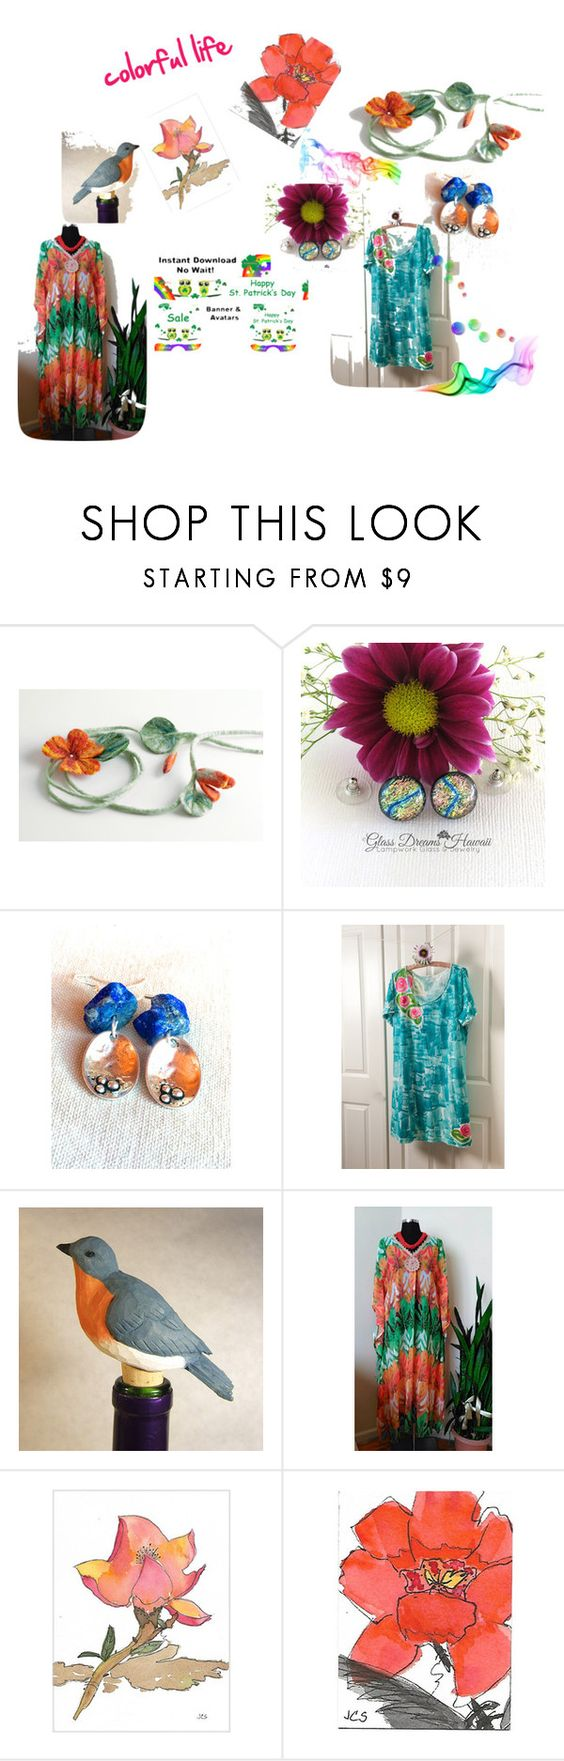 """""""Colorful Life"""" by nadya-mendik ❤ liked on Polyvore featuring Arco"""